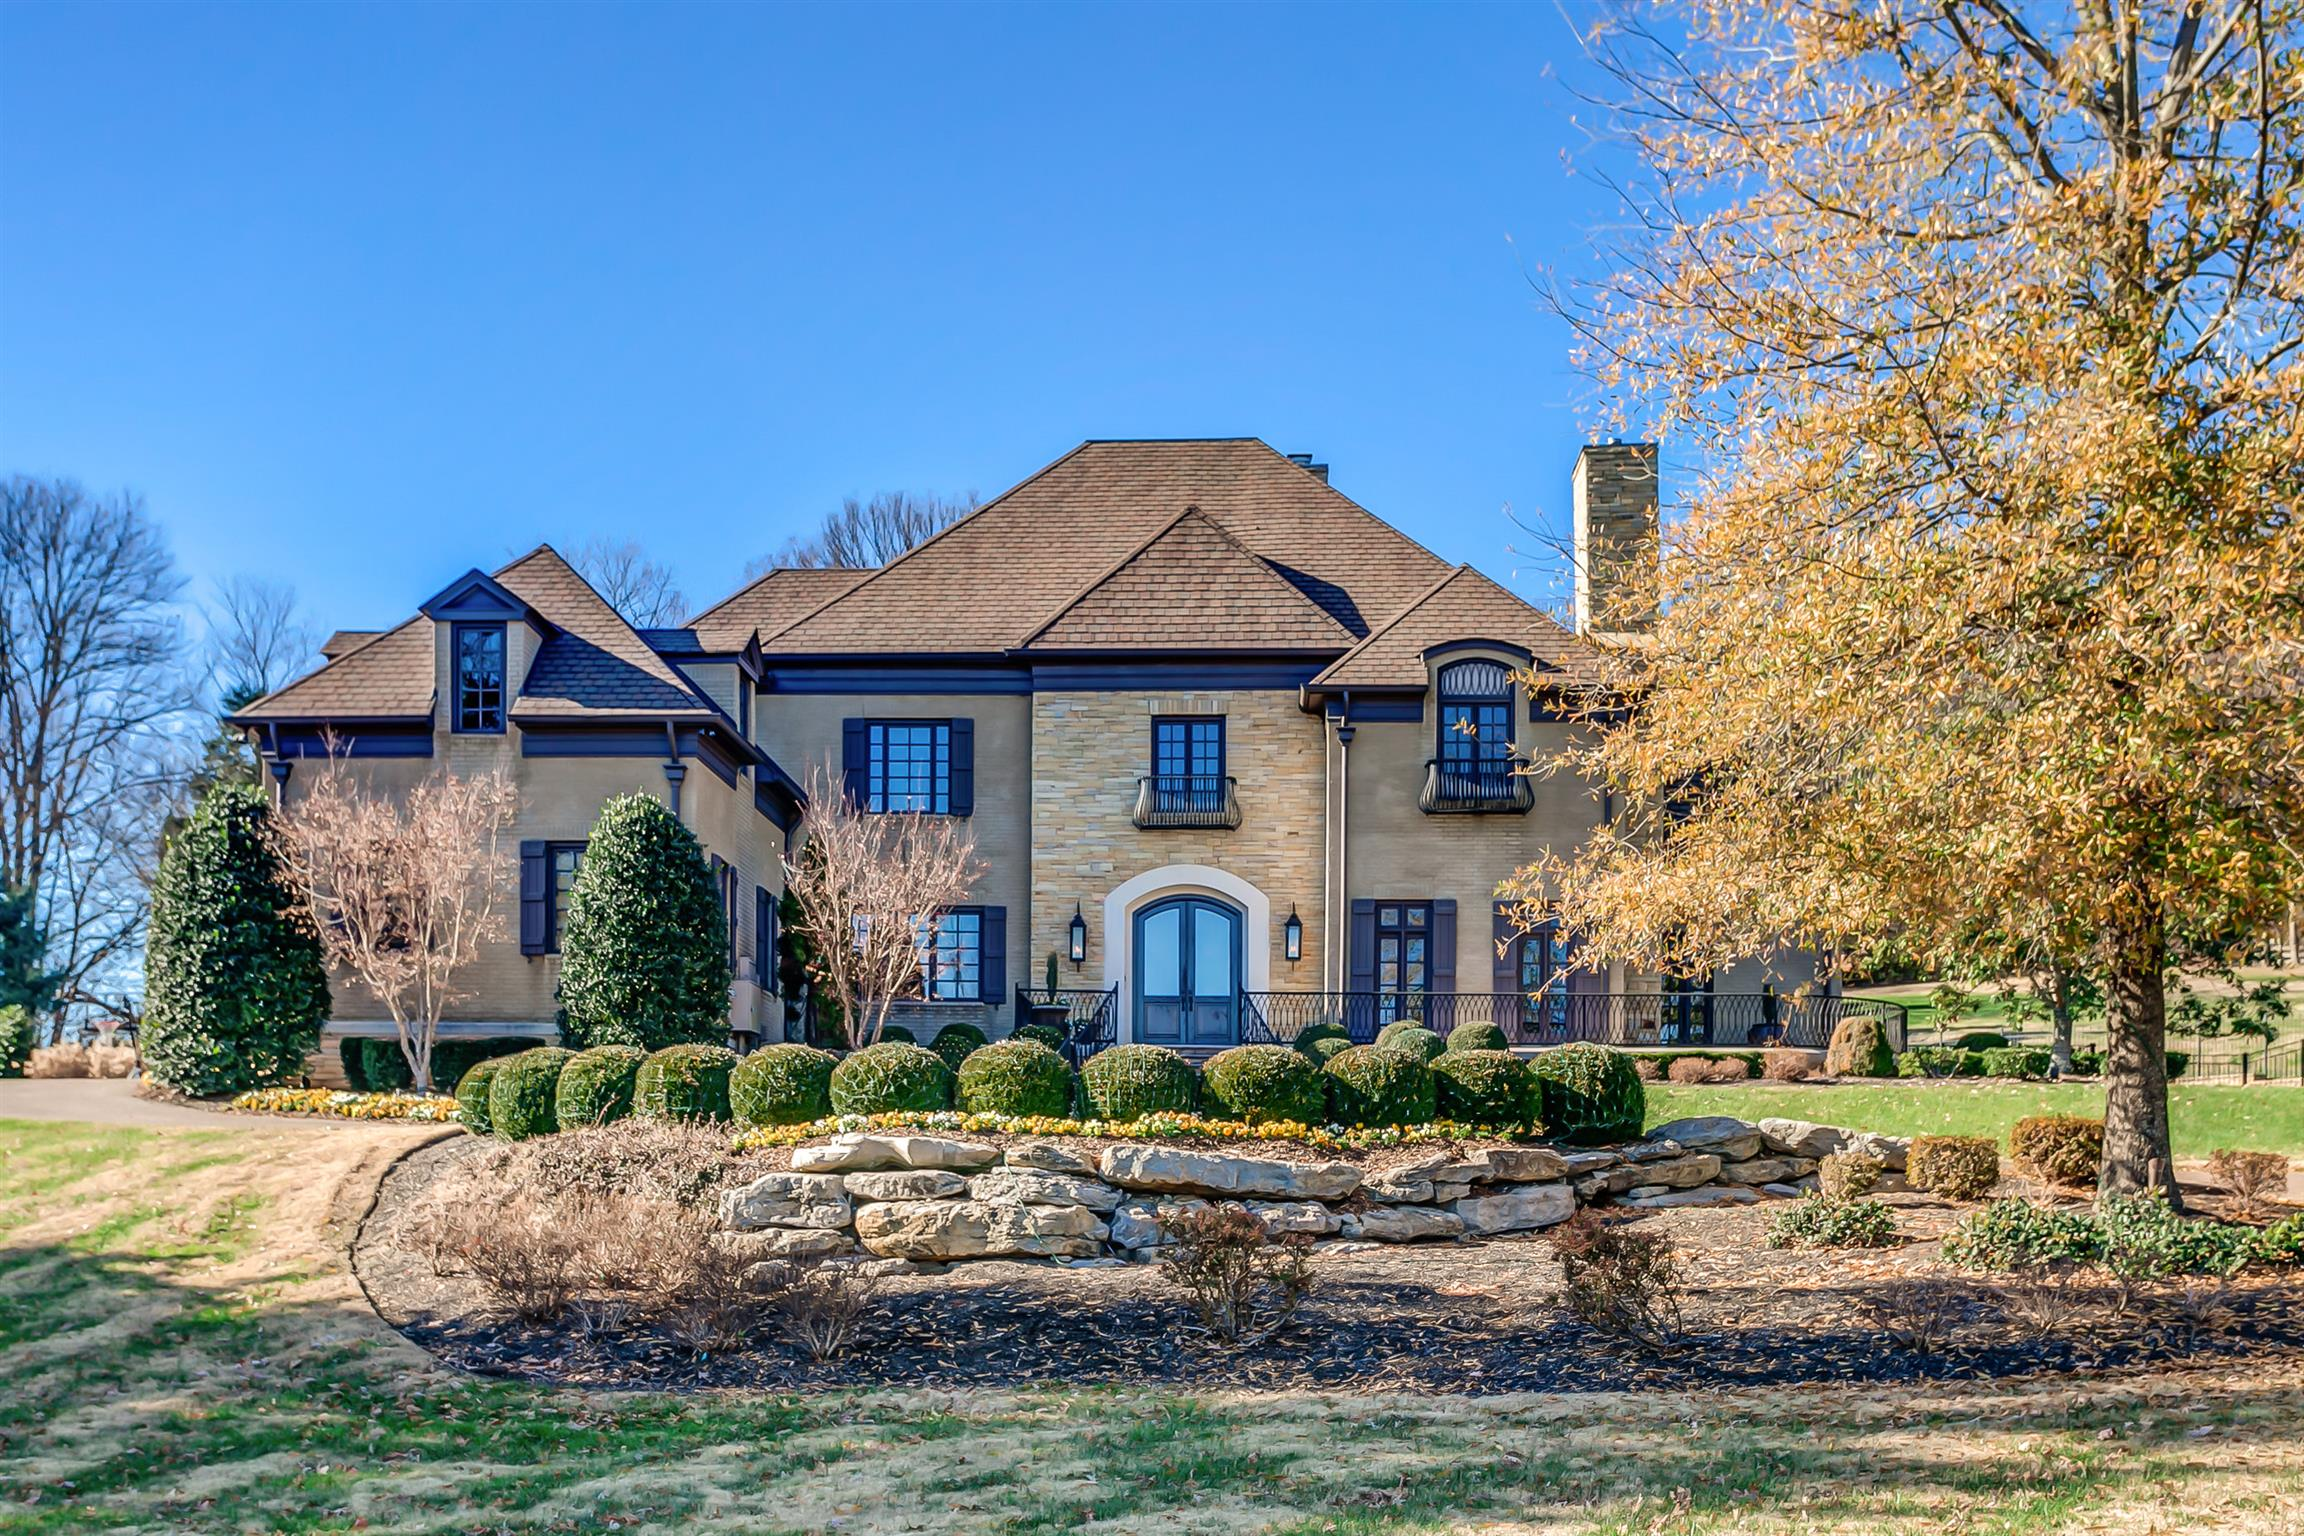 1 Agincourt Way, Brentwood, Tennessee